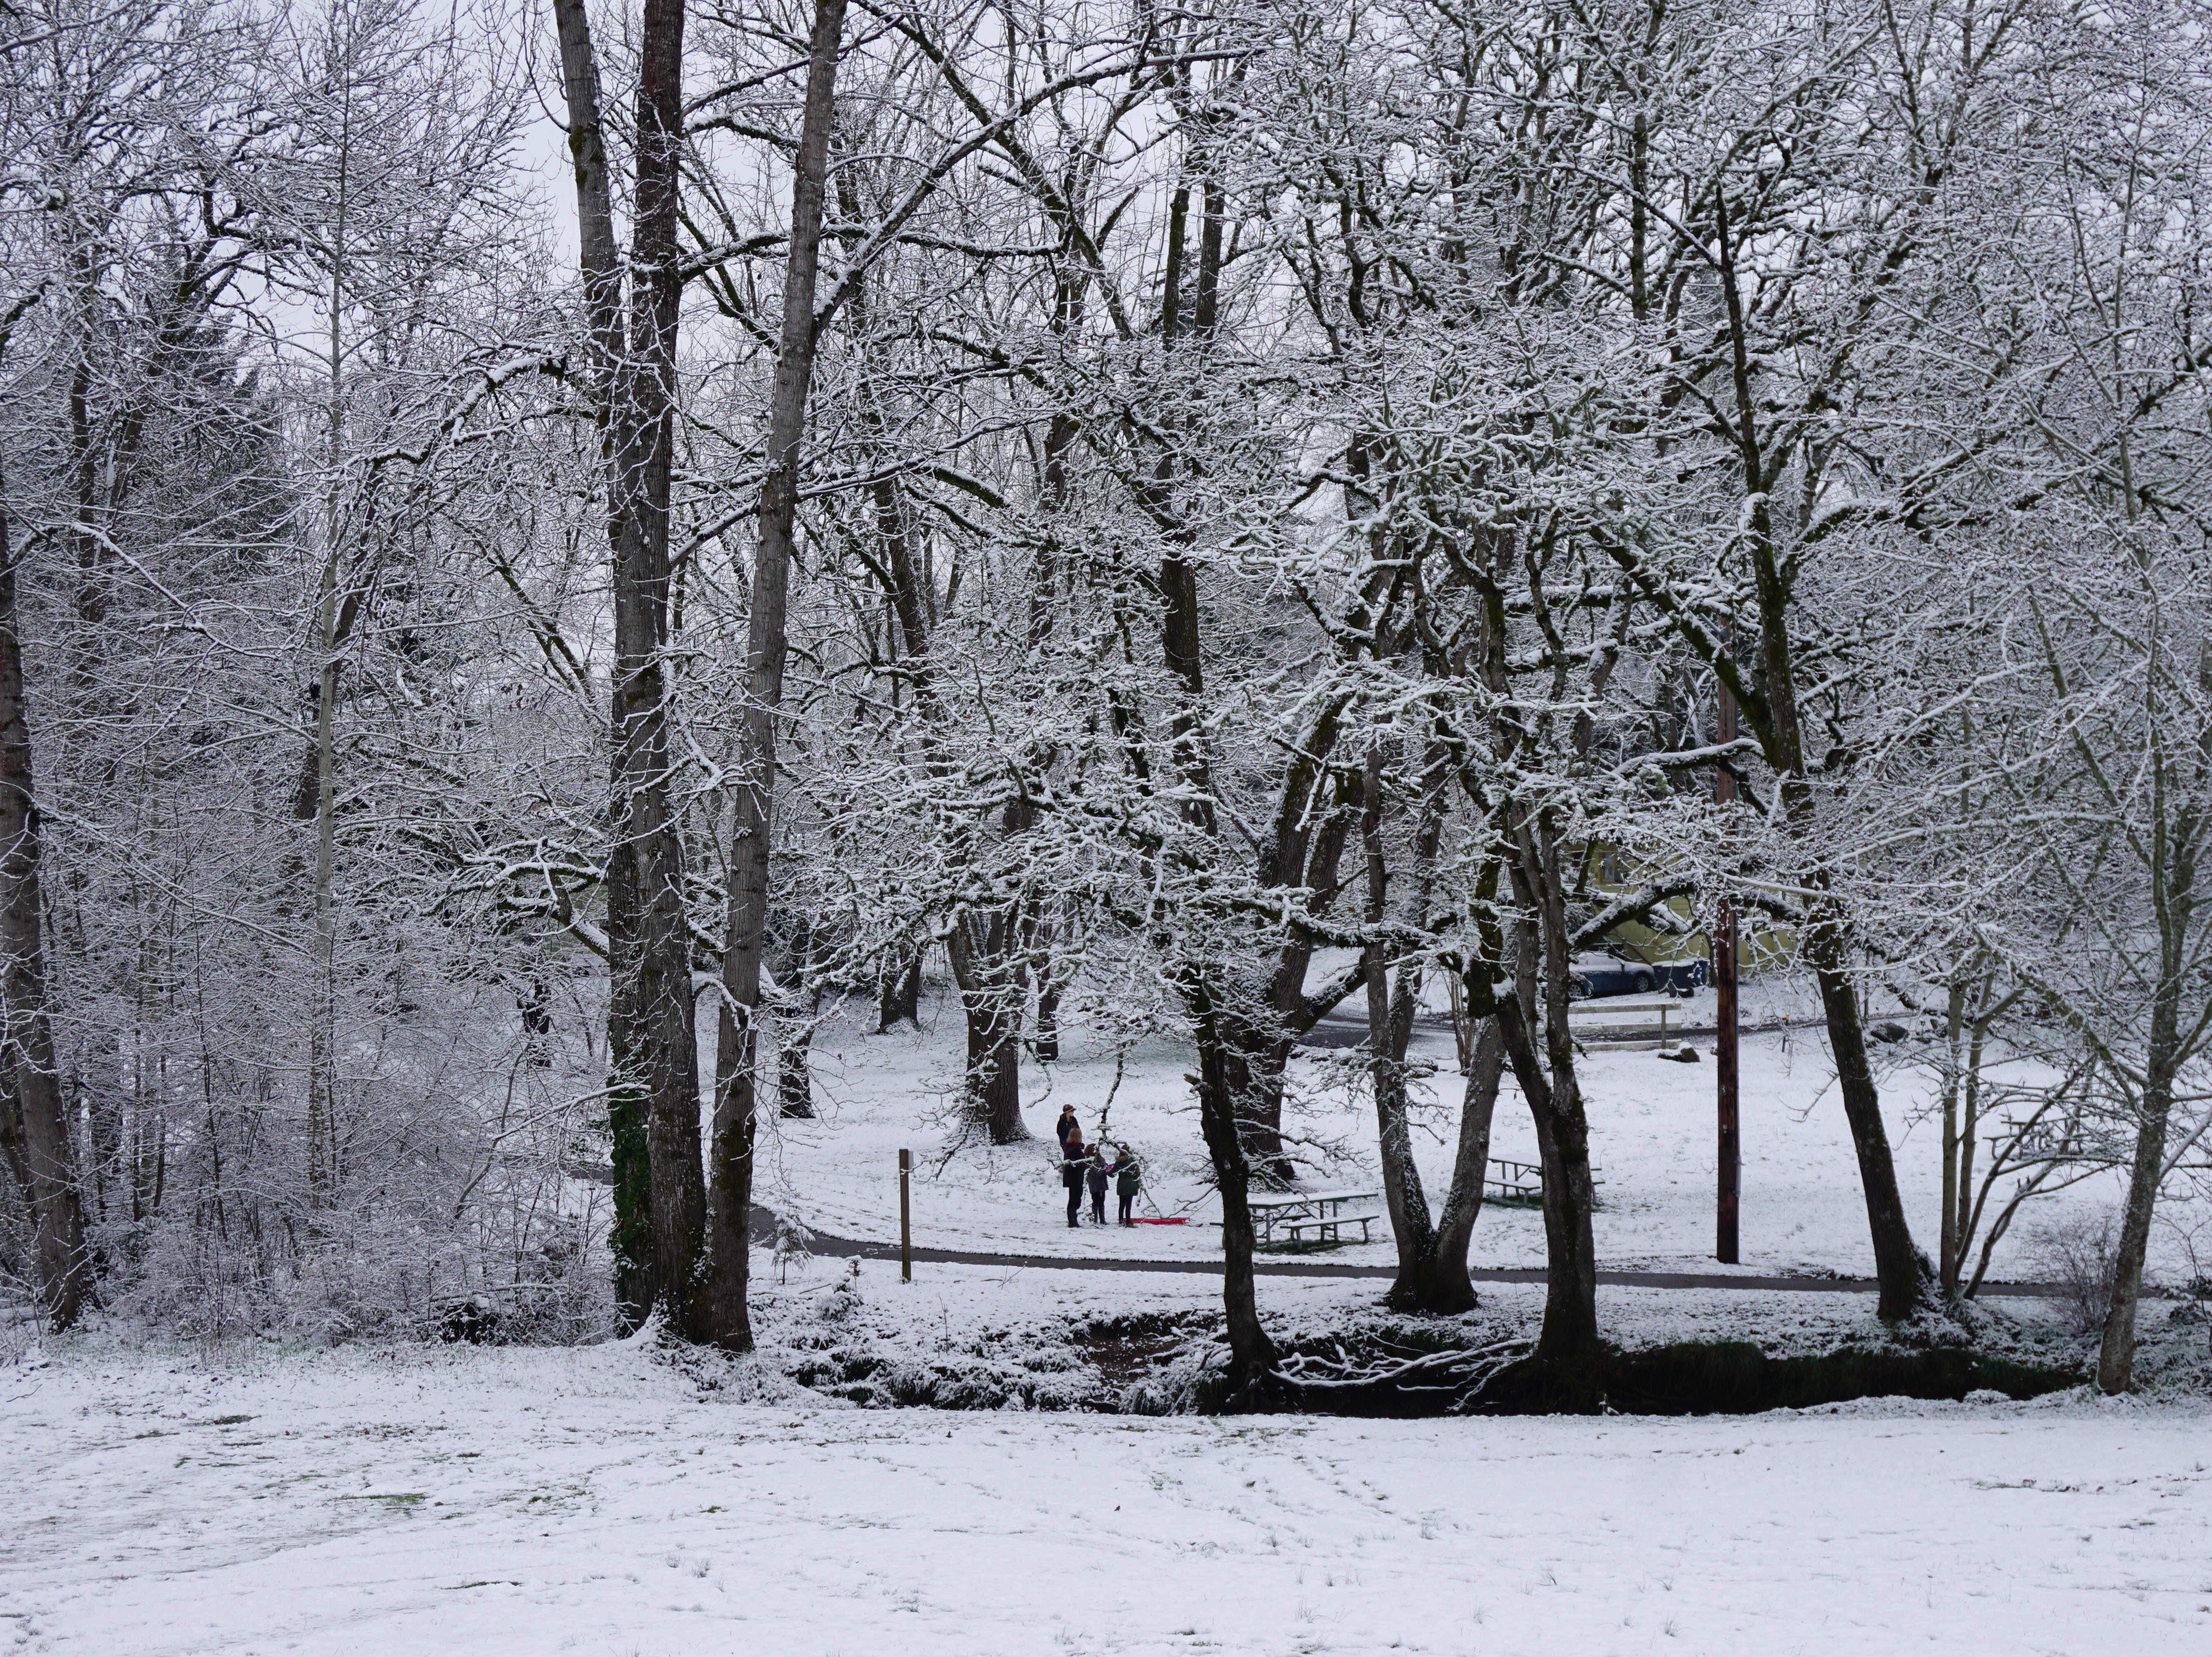 Clark Creek Park was a popular destination for sledders and others enjoying the first wide-spread snow of the winter on Tuesday, Feb. 5, 2019, in Salem.